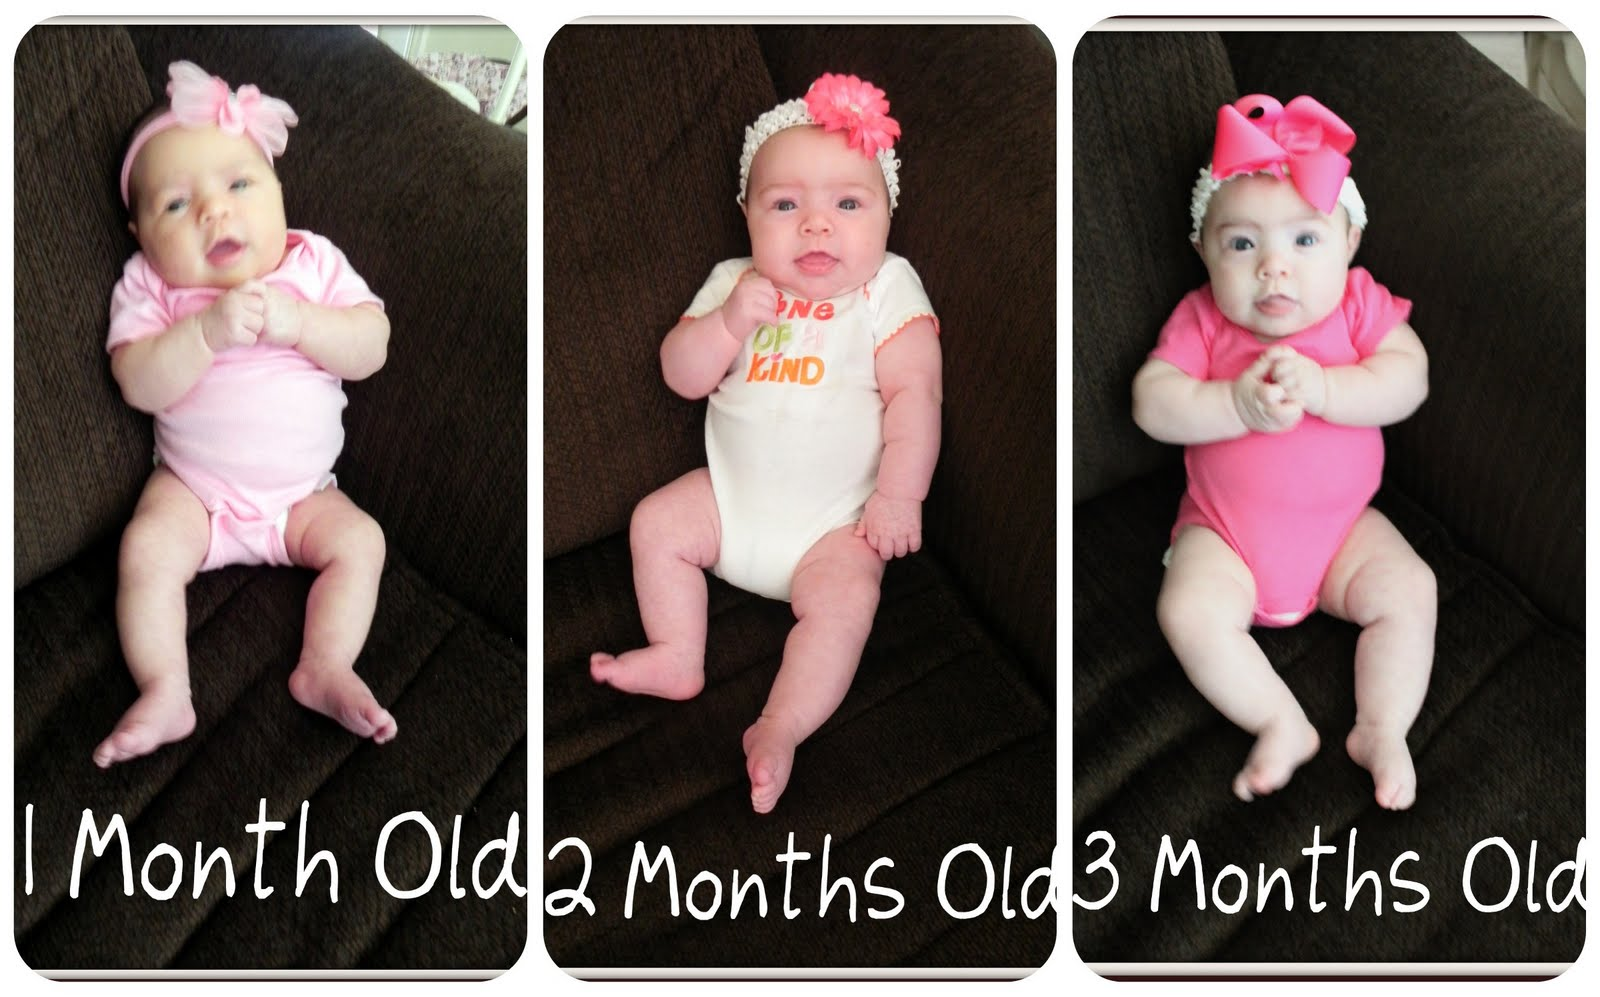 Happy 3 Months Mallory! We Love You!